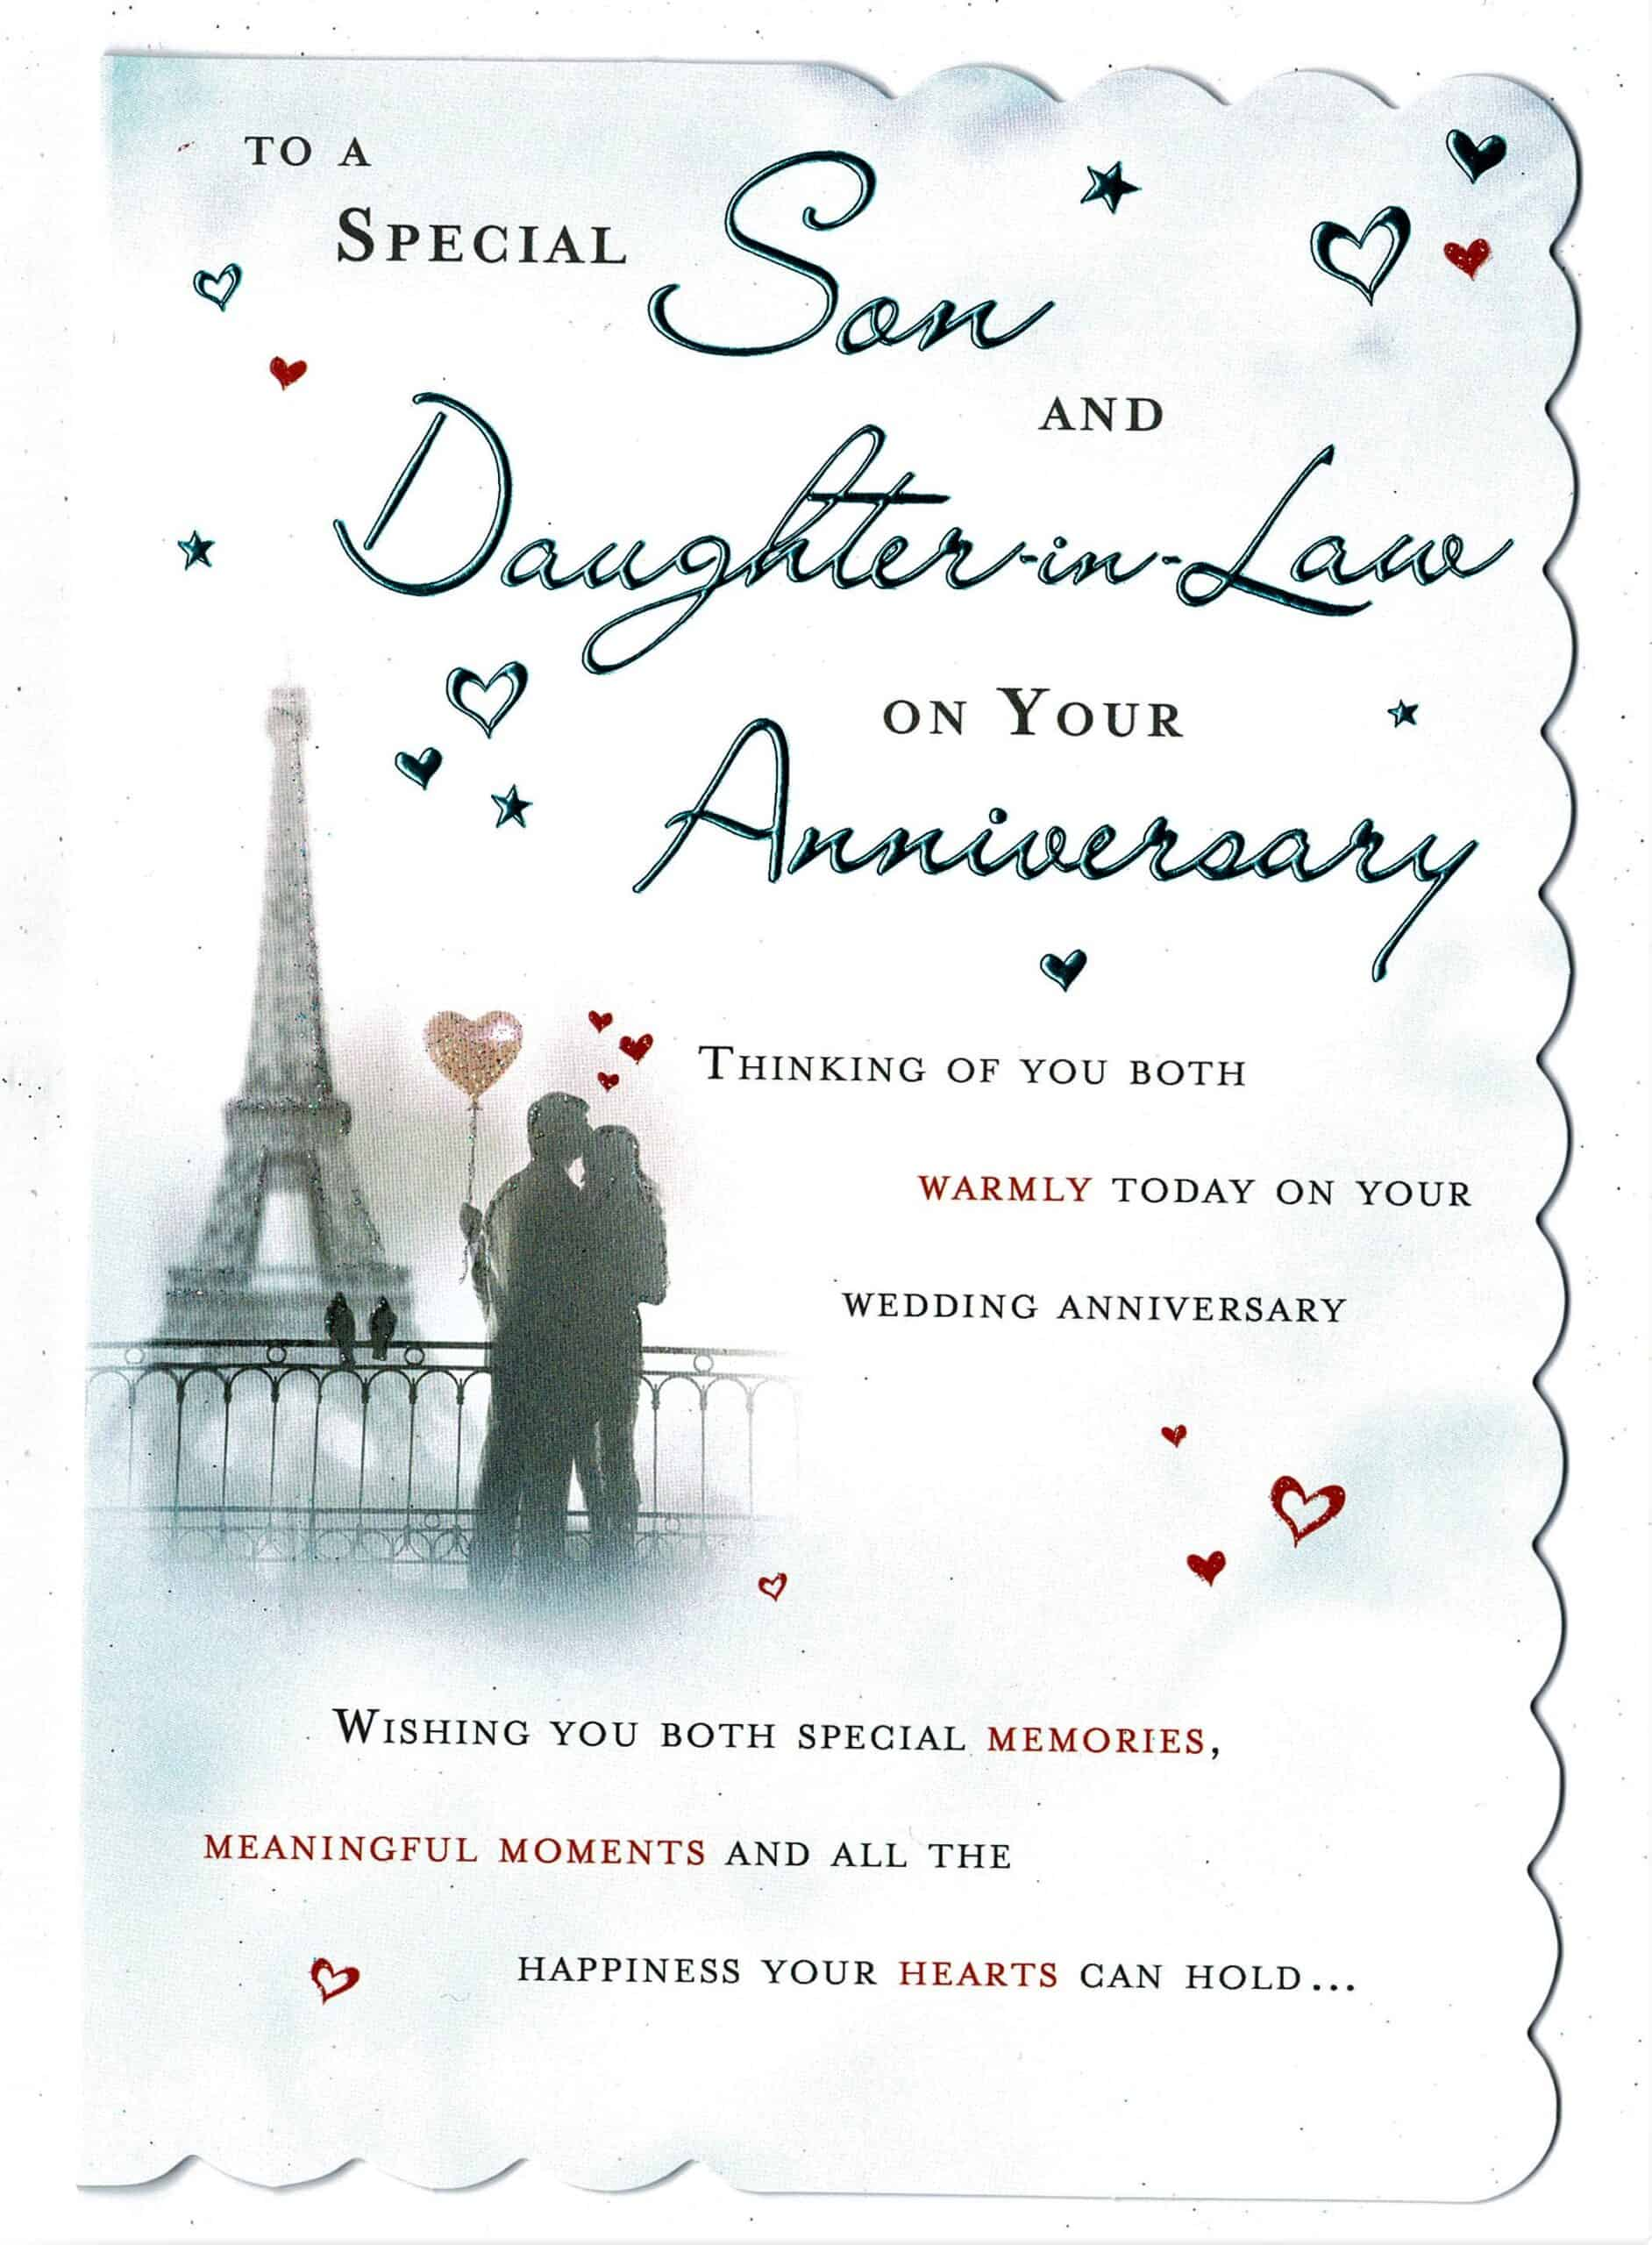 son and daughter in law anniversary card with sentiment